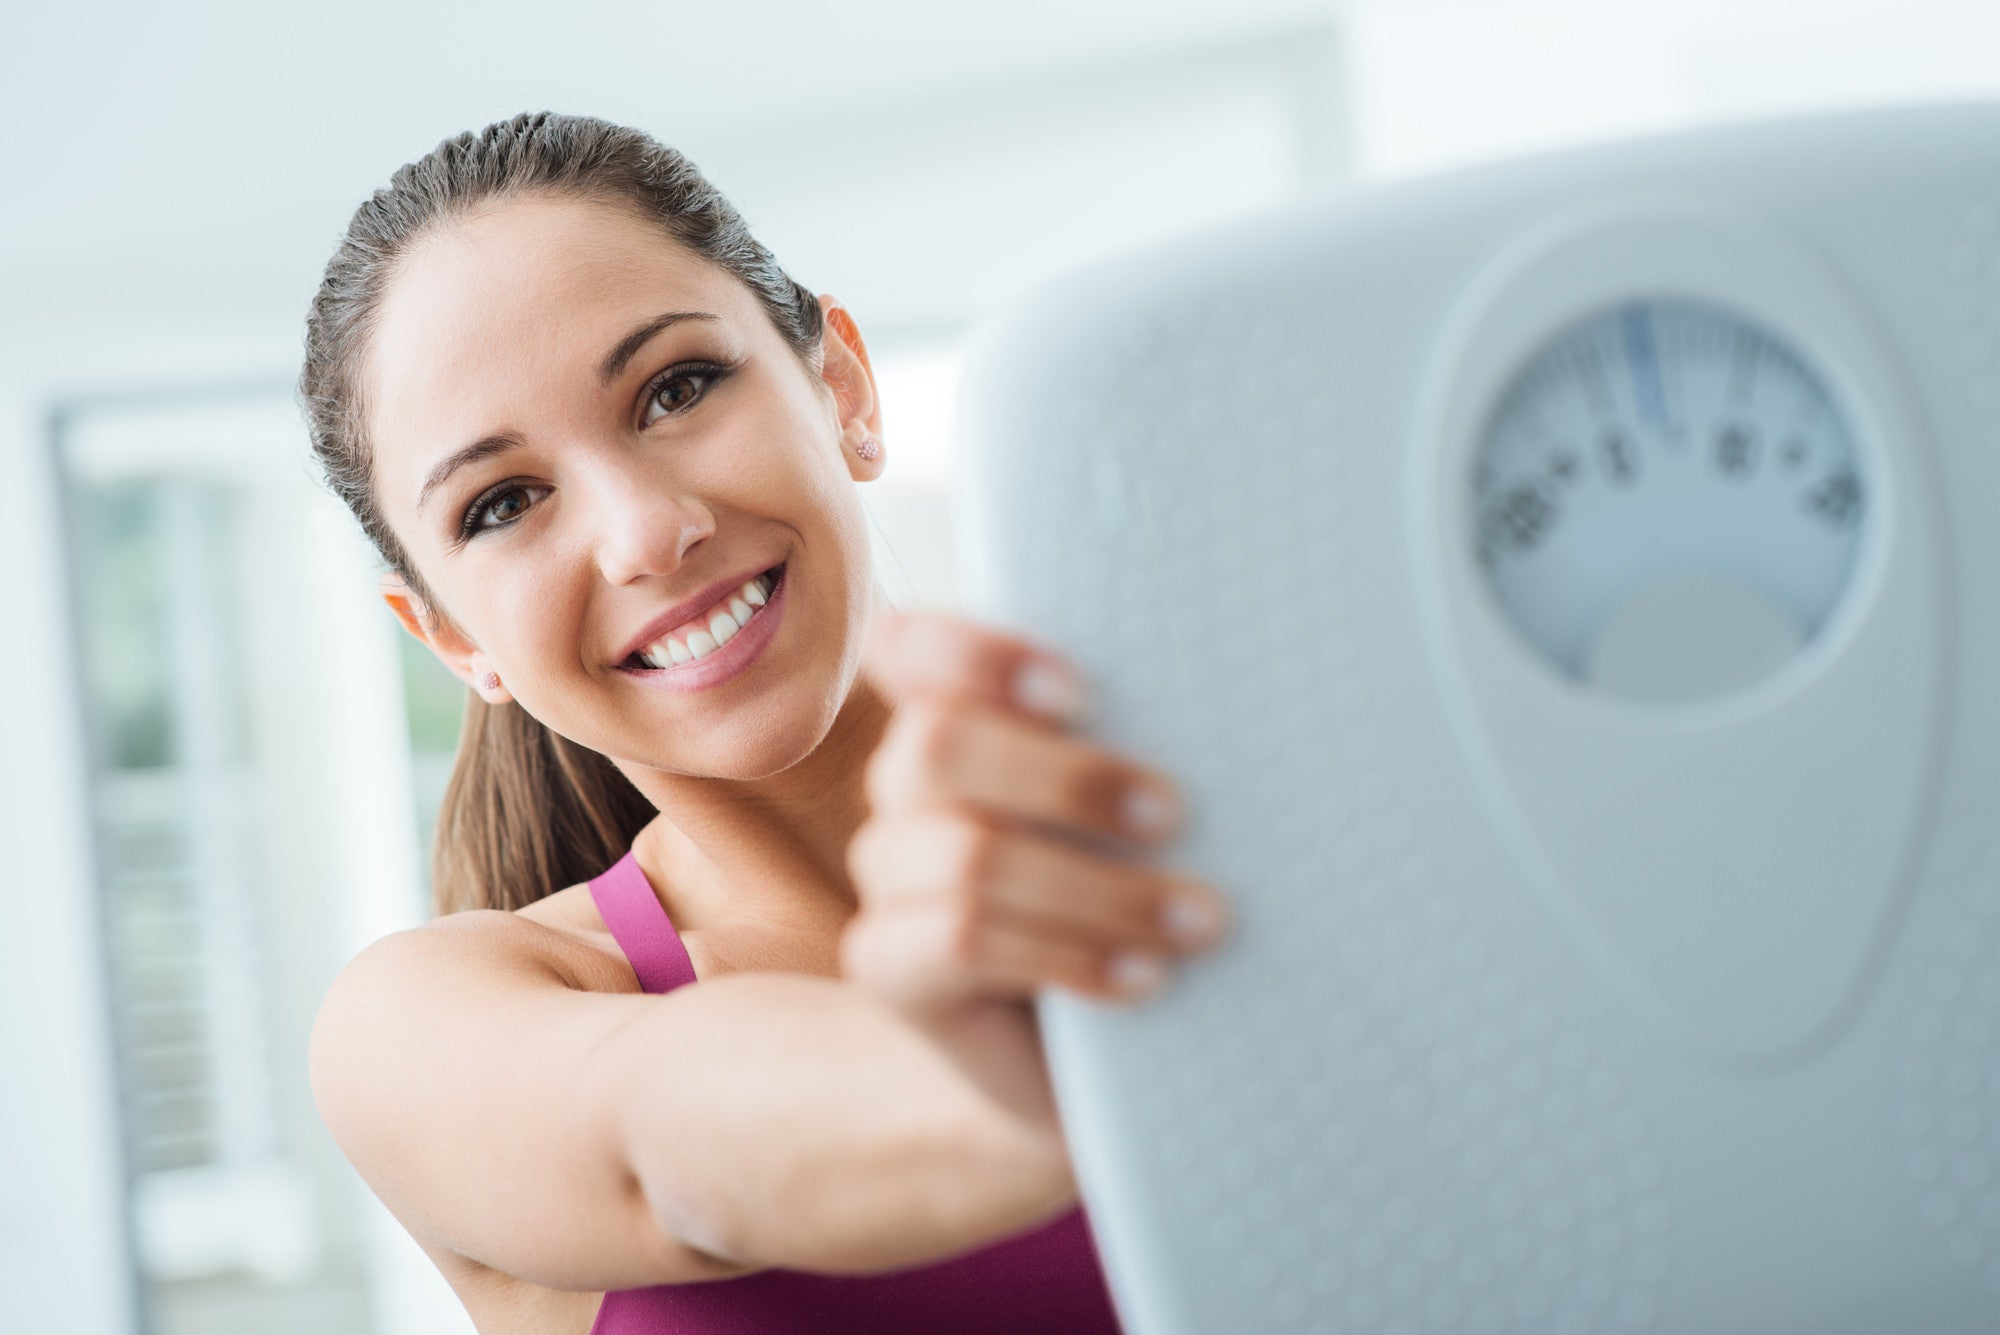 4 Tips To Lose Weight The Healthy Way